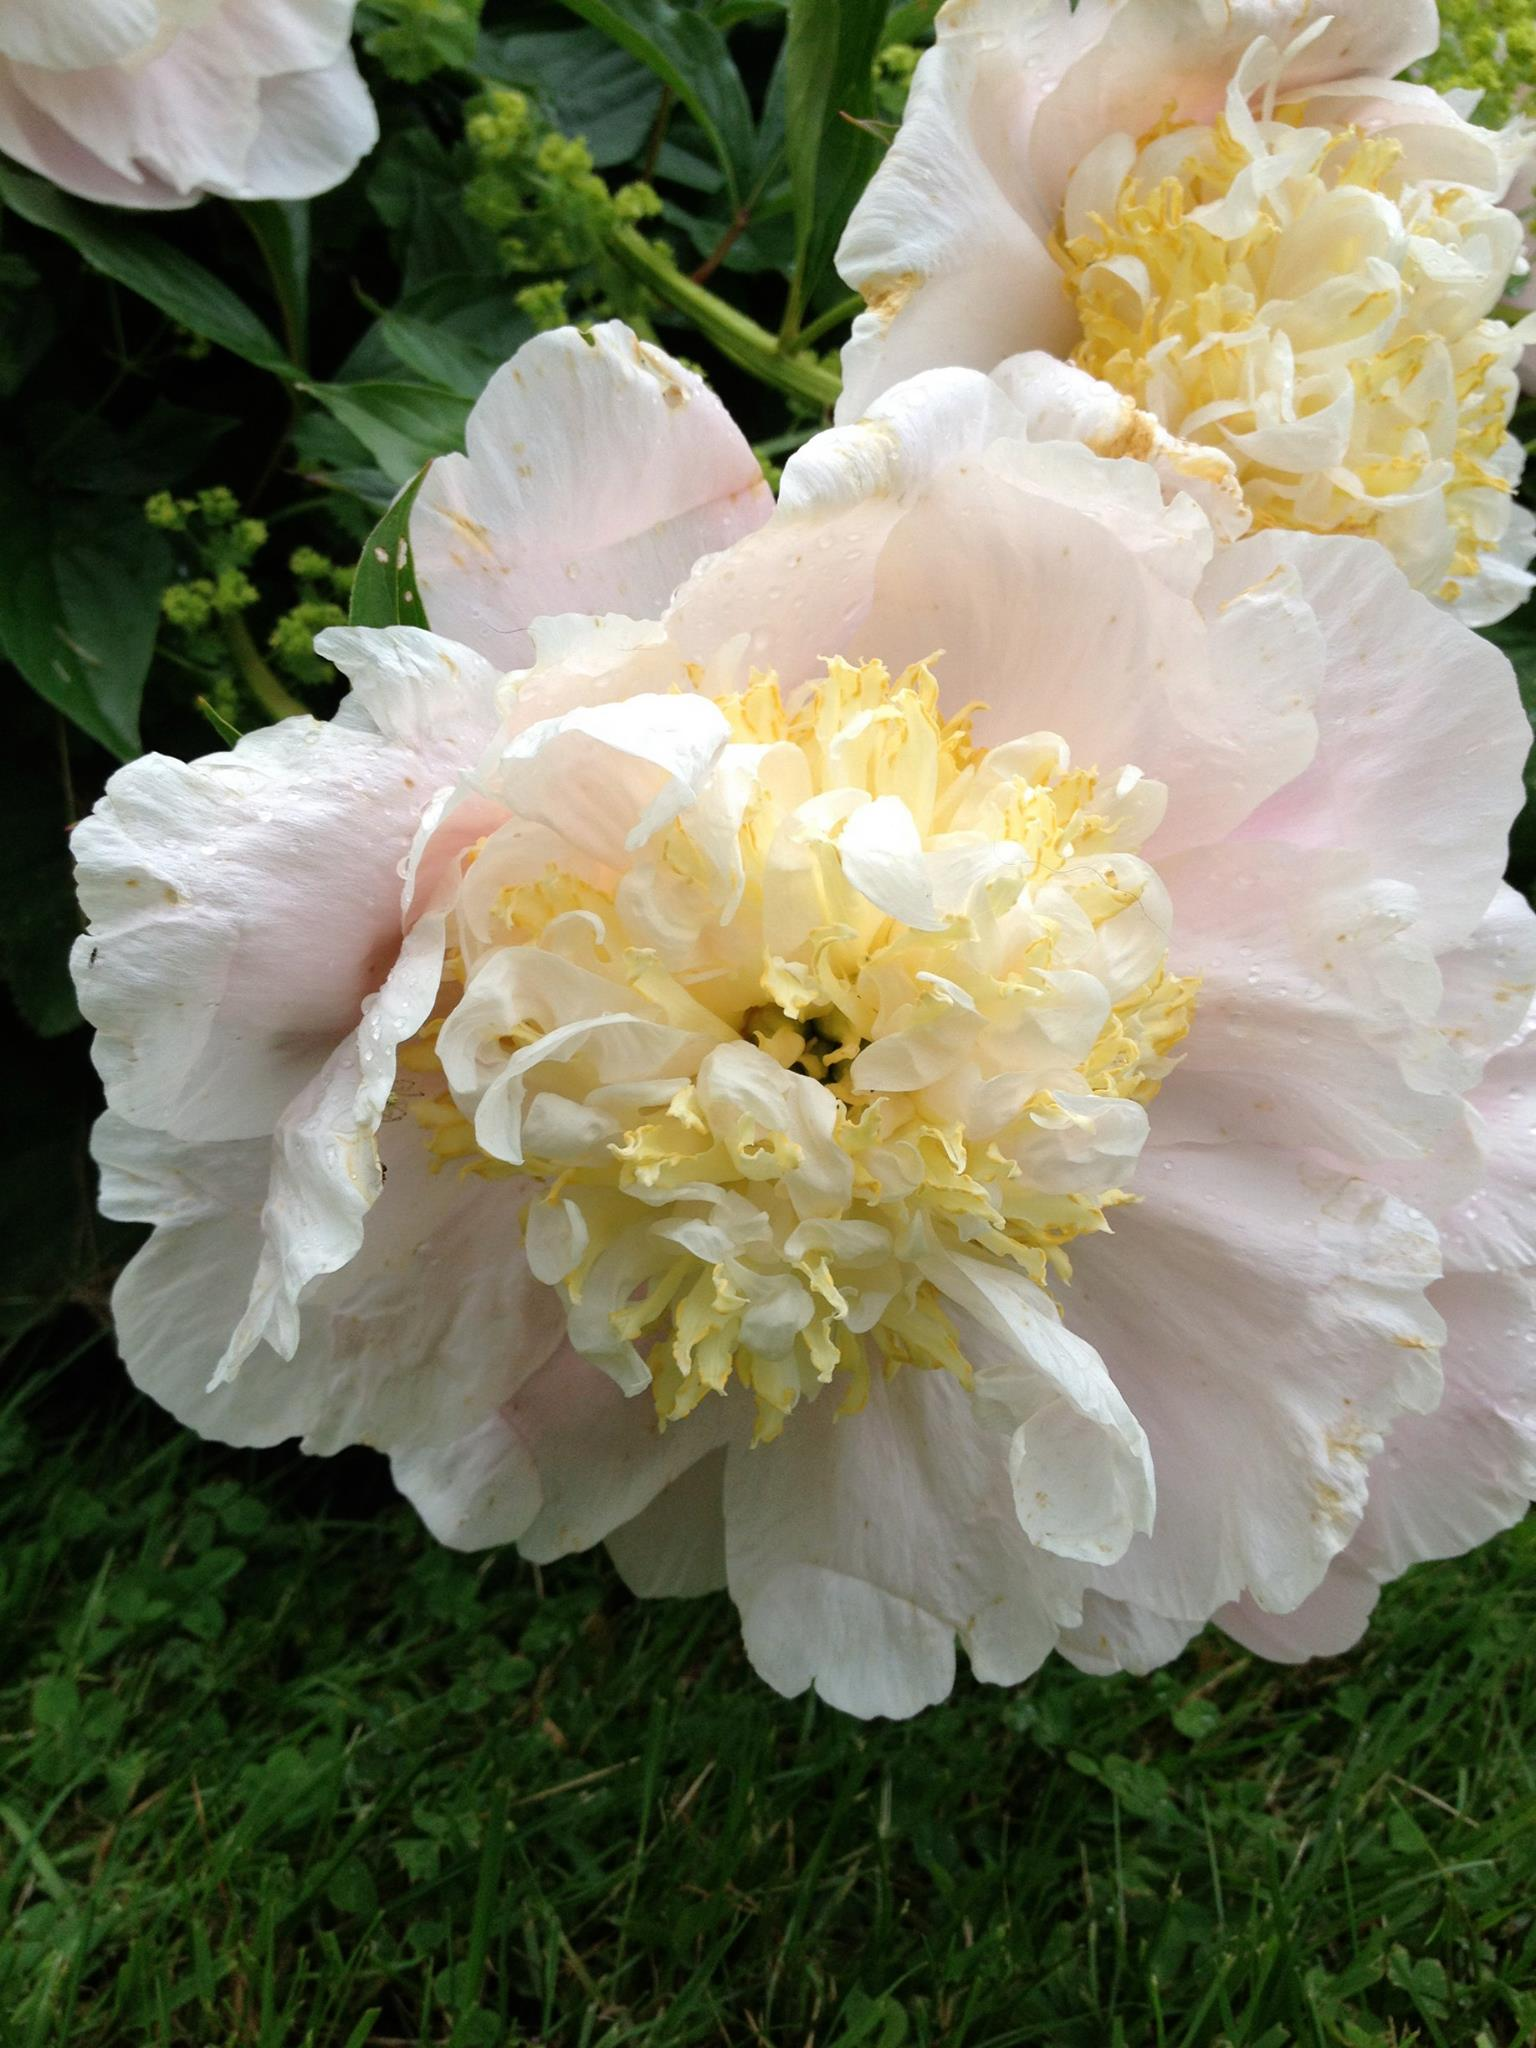 White peony blossom with pink edges to the petal and a yellow center